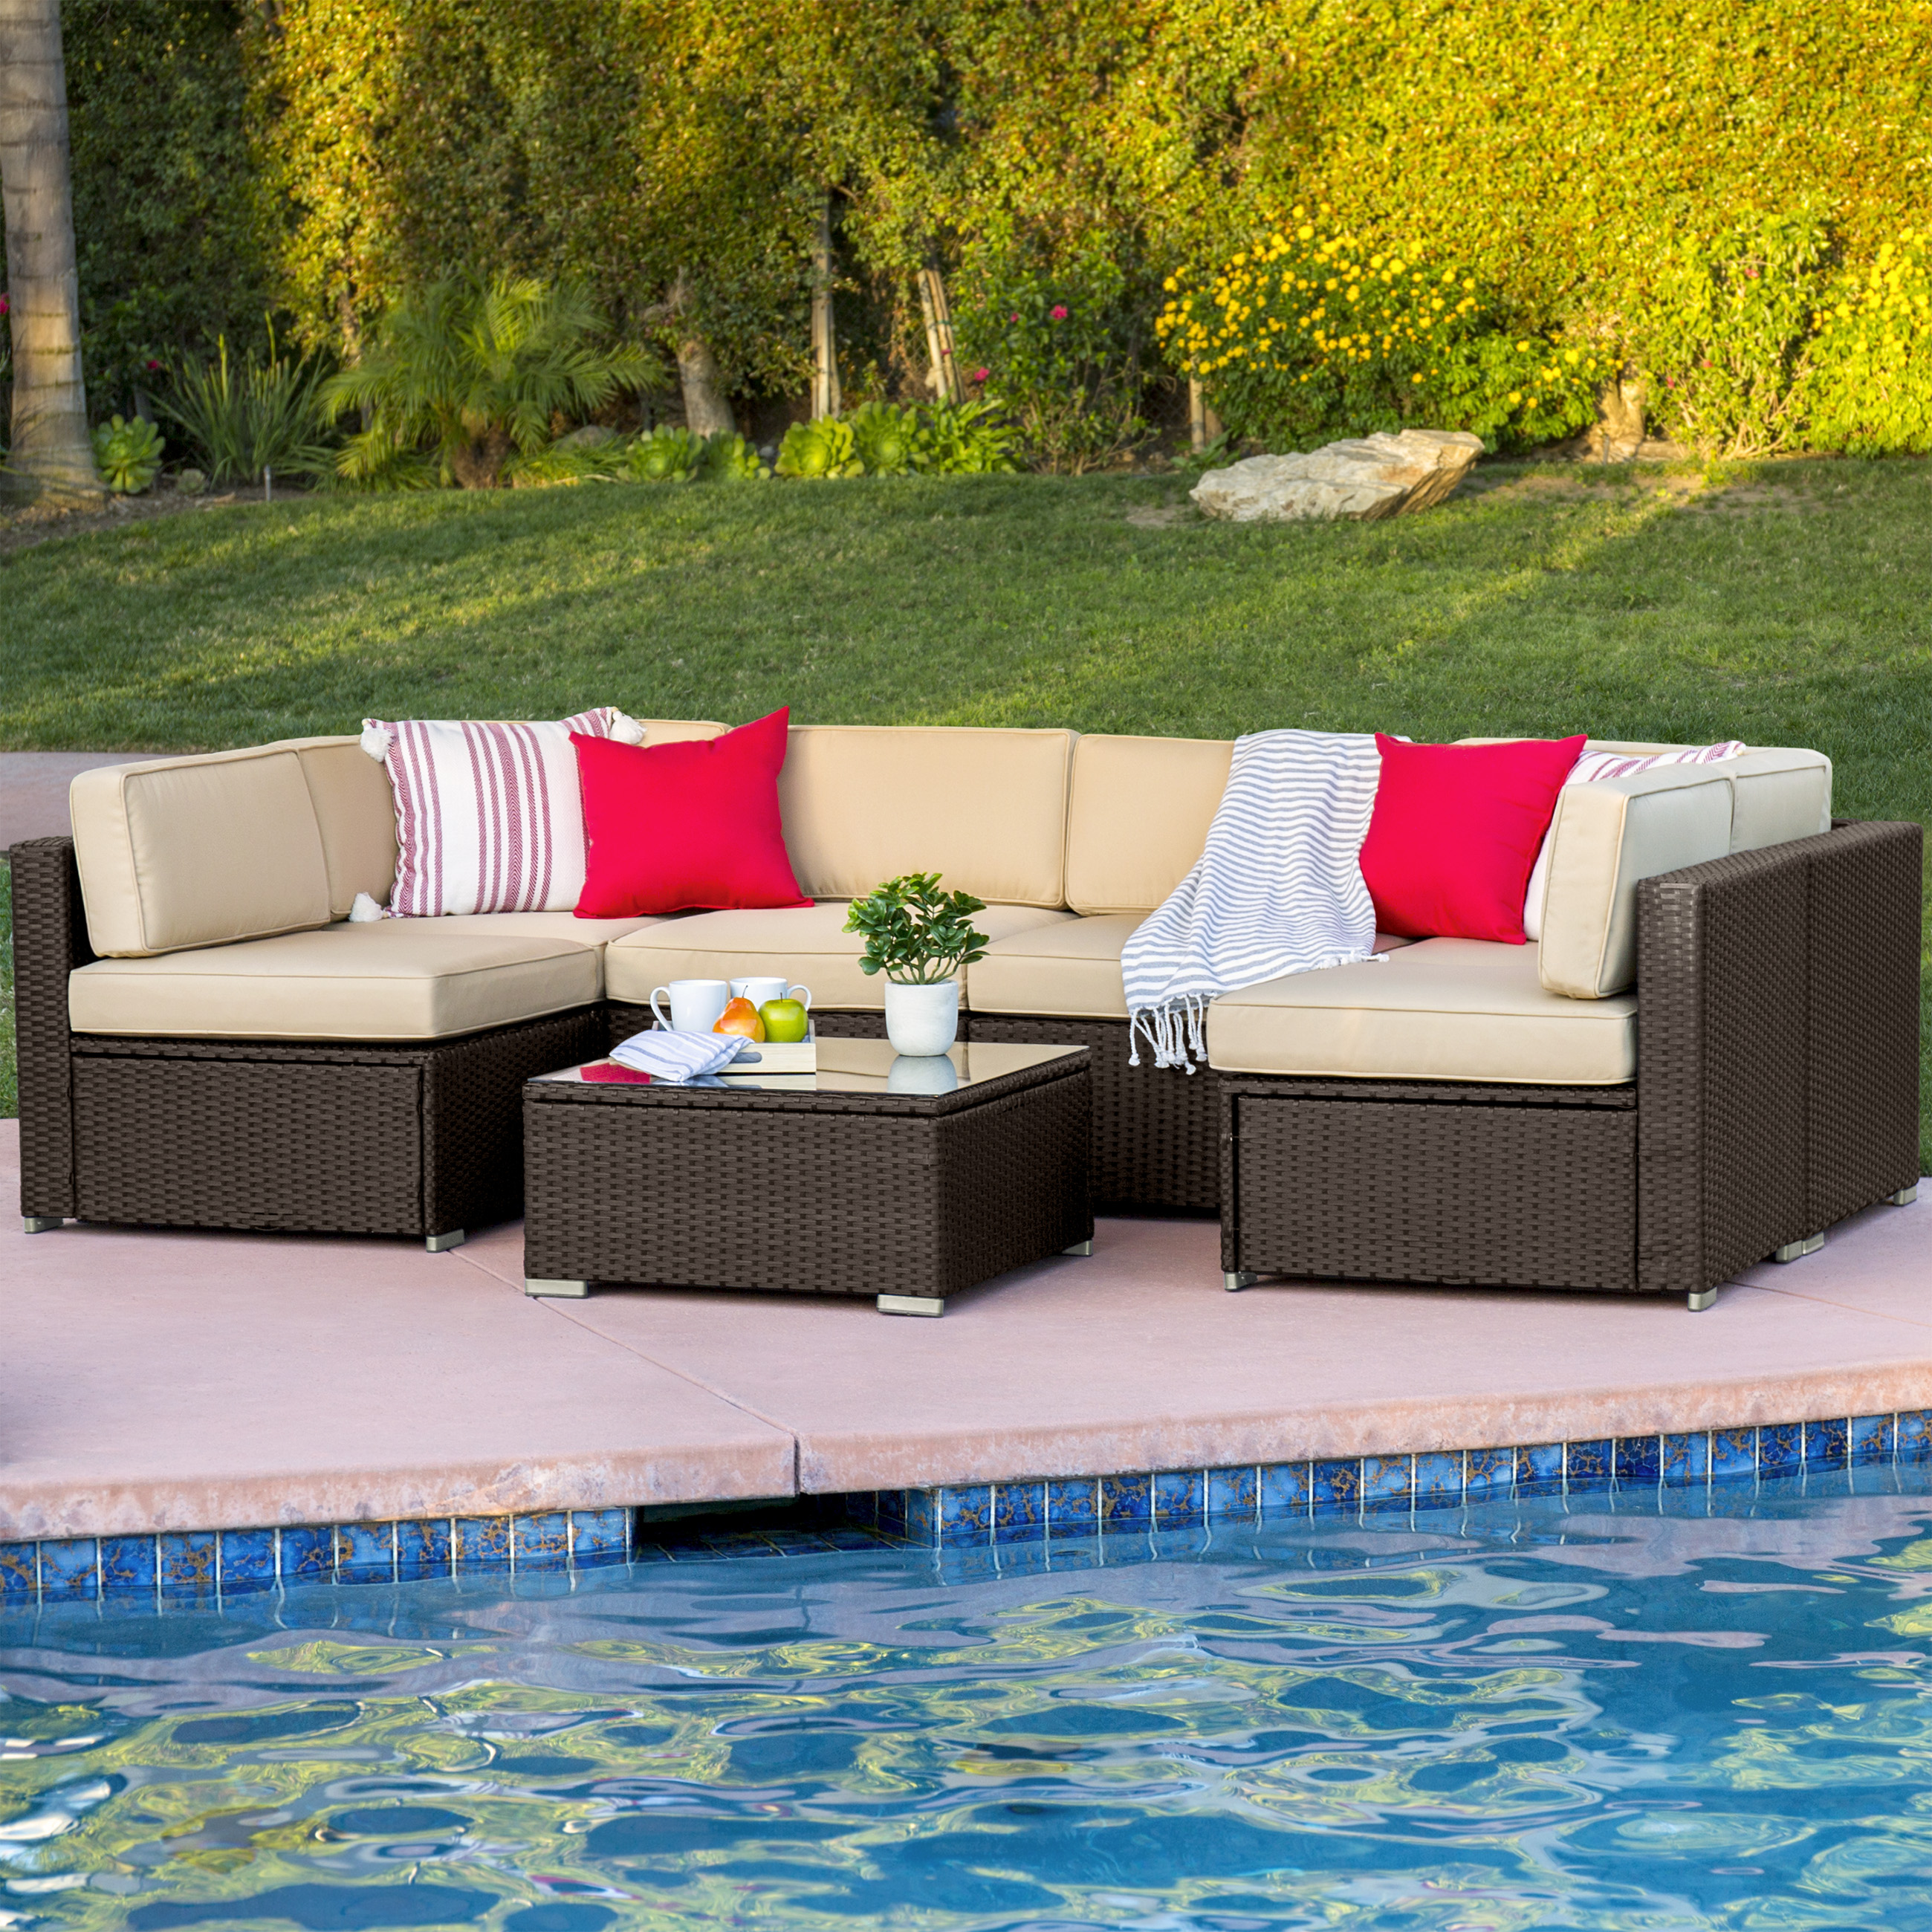 Best Choice Products 7pc Outdoor Patio Garden Furniture Wicker